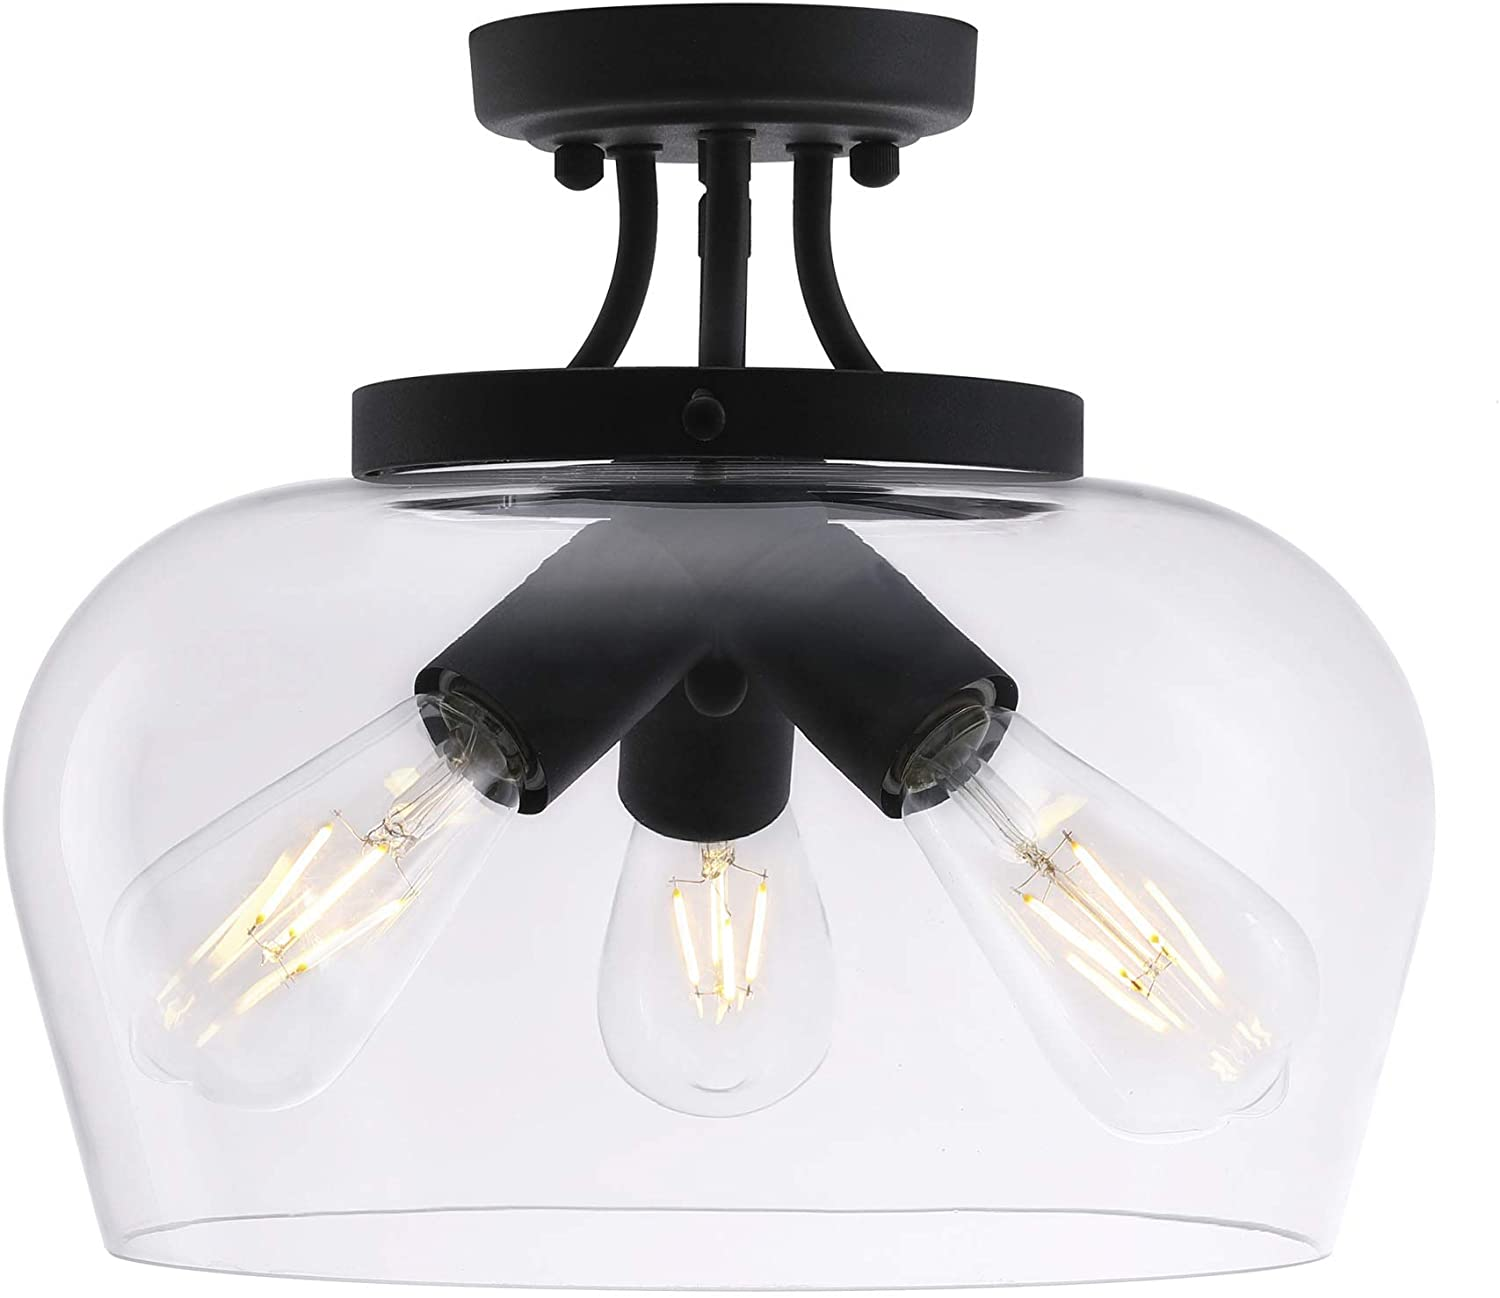 CO-Z Modern Industrial Clear Glass Shade Ceiling Light Fixture, 3 Bulb Matte Black Semi Flush Mount Ceiling Lighting Fixture for Kitchen Island Dining Table Bedroom Hallway Living Room Entryway Foyer